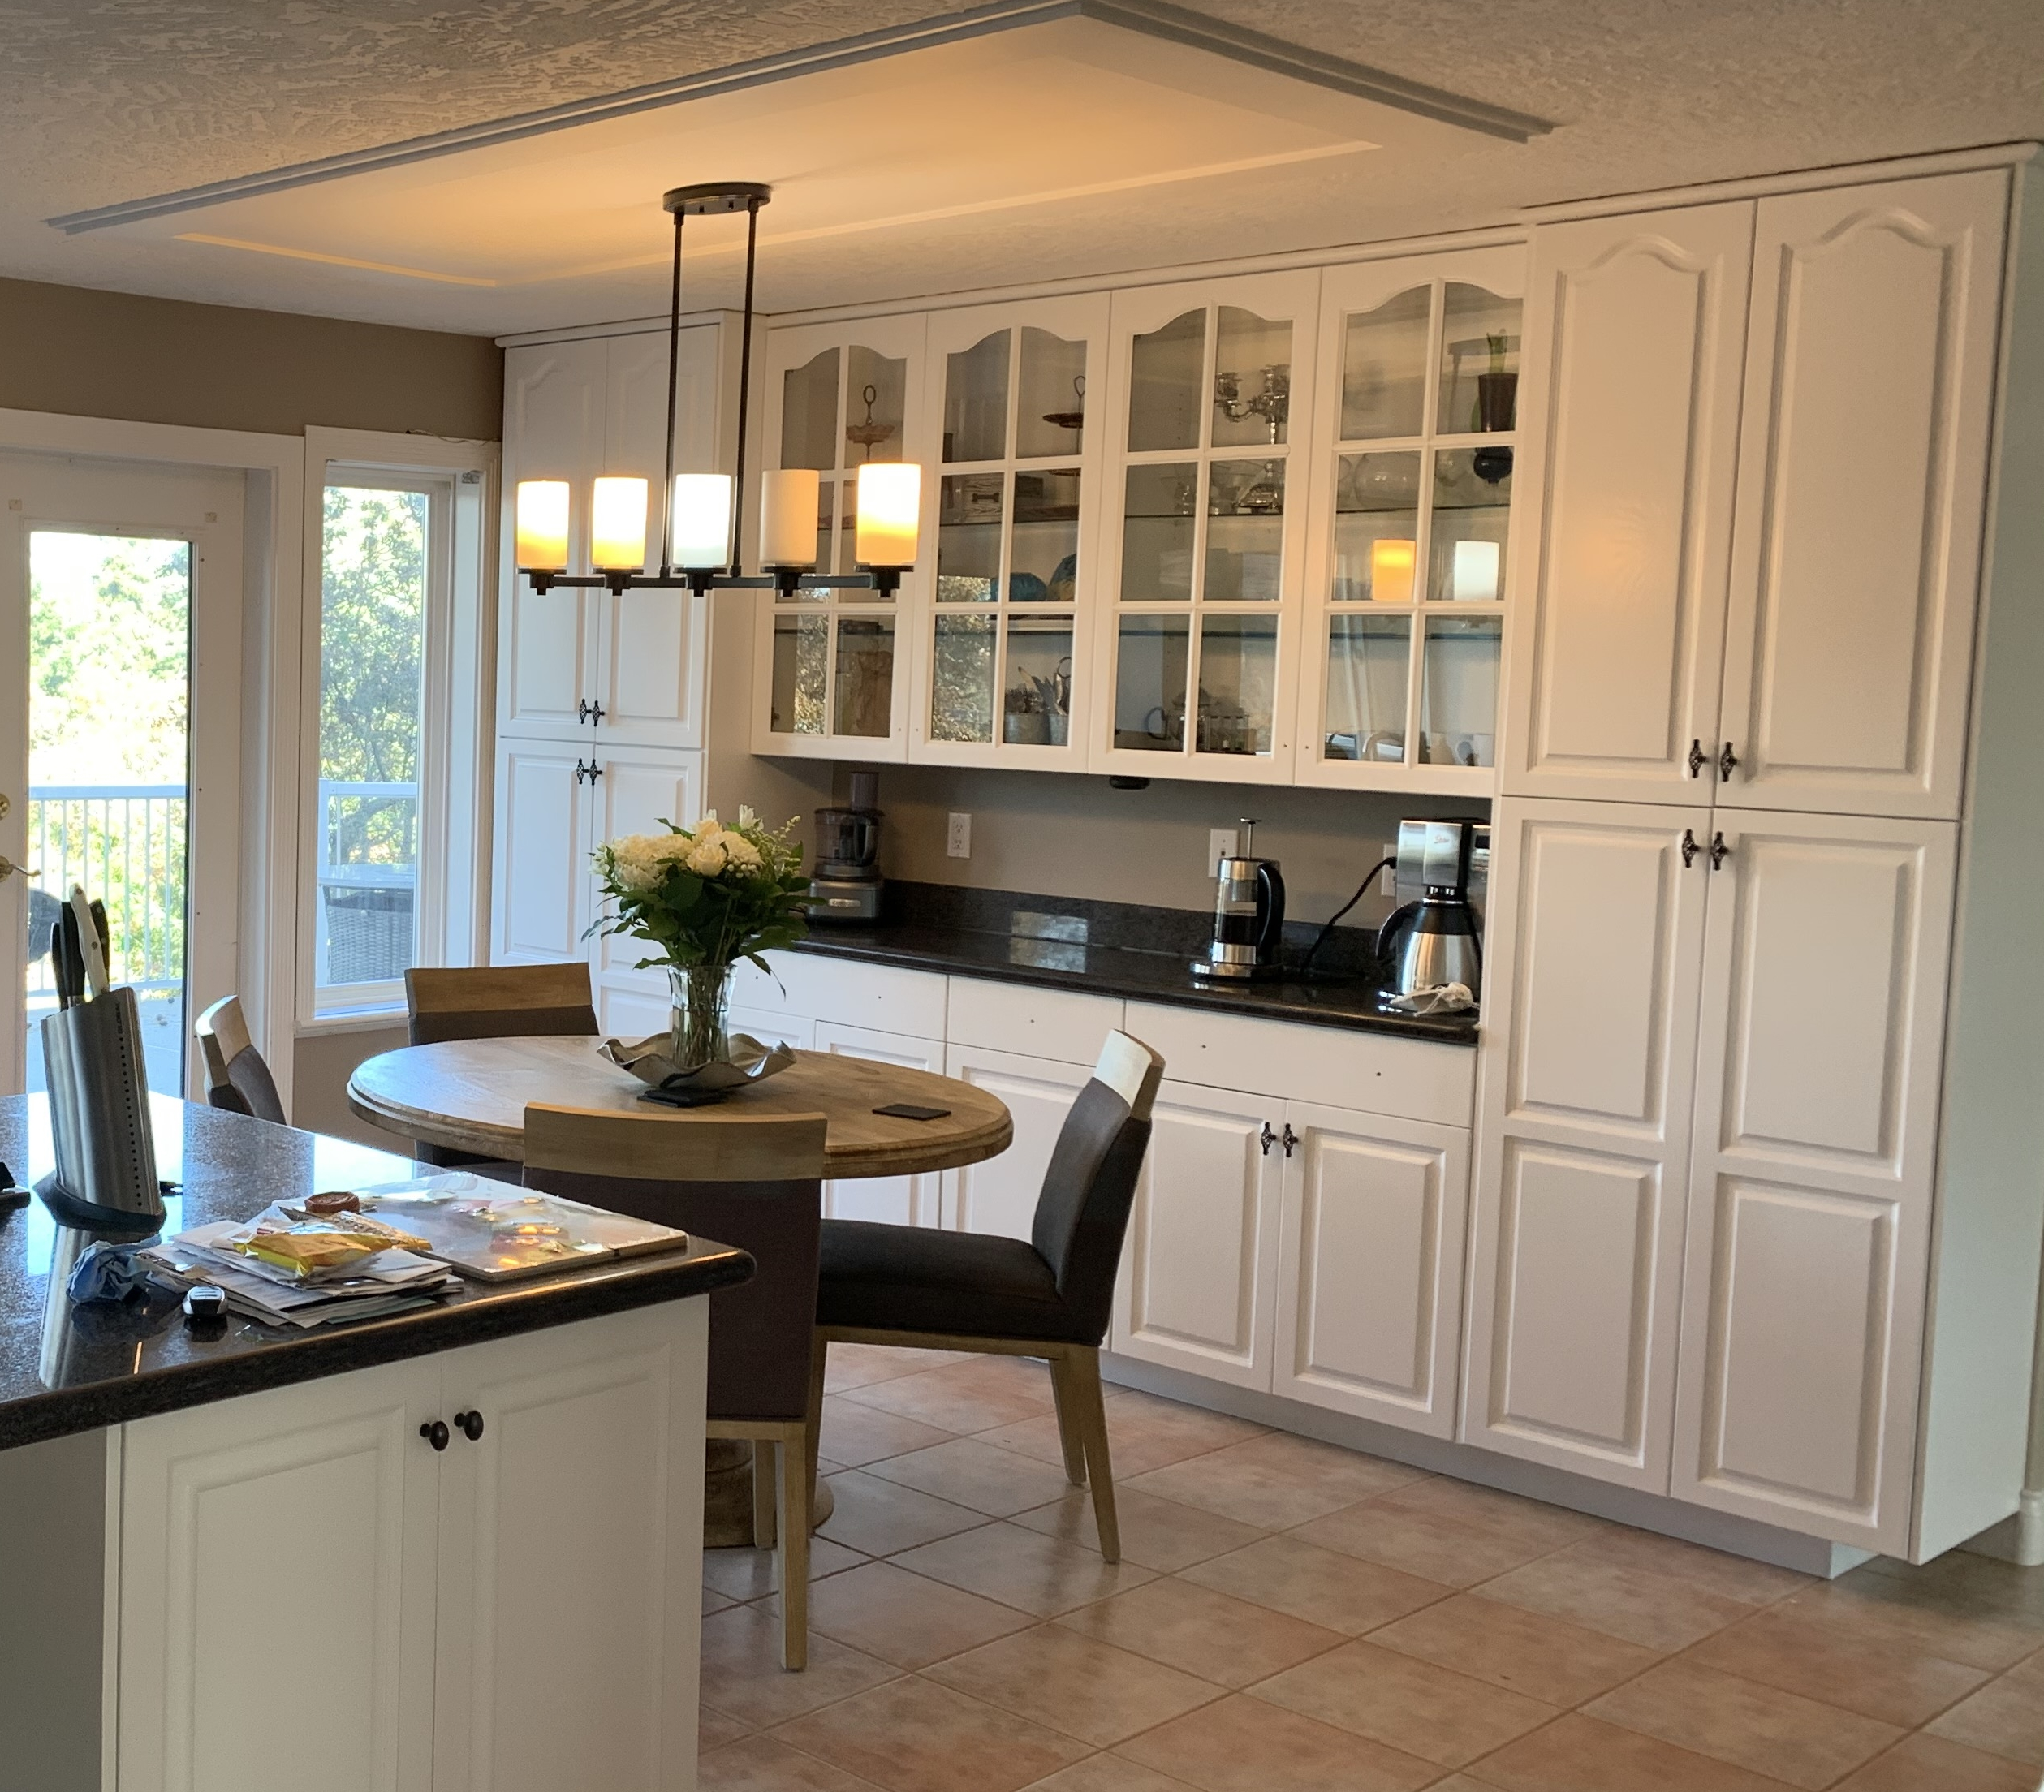 oak cabinets painted in Chantilly Lace